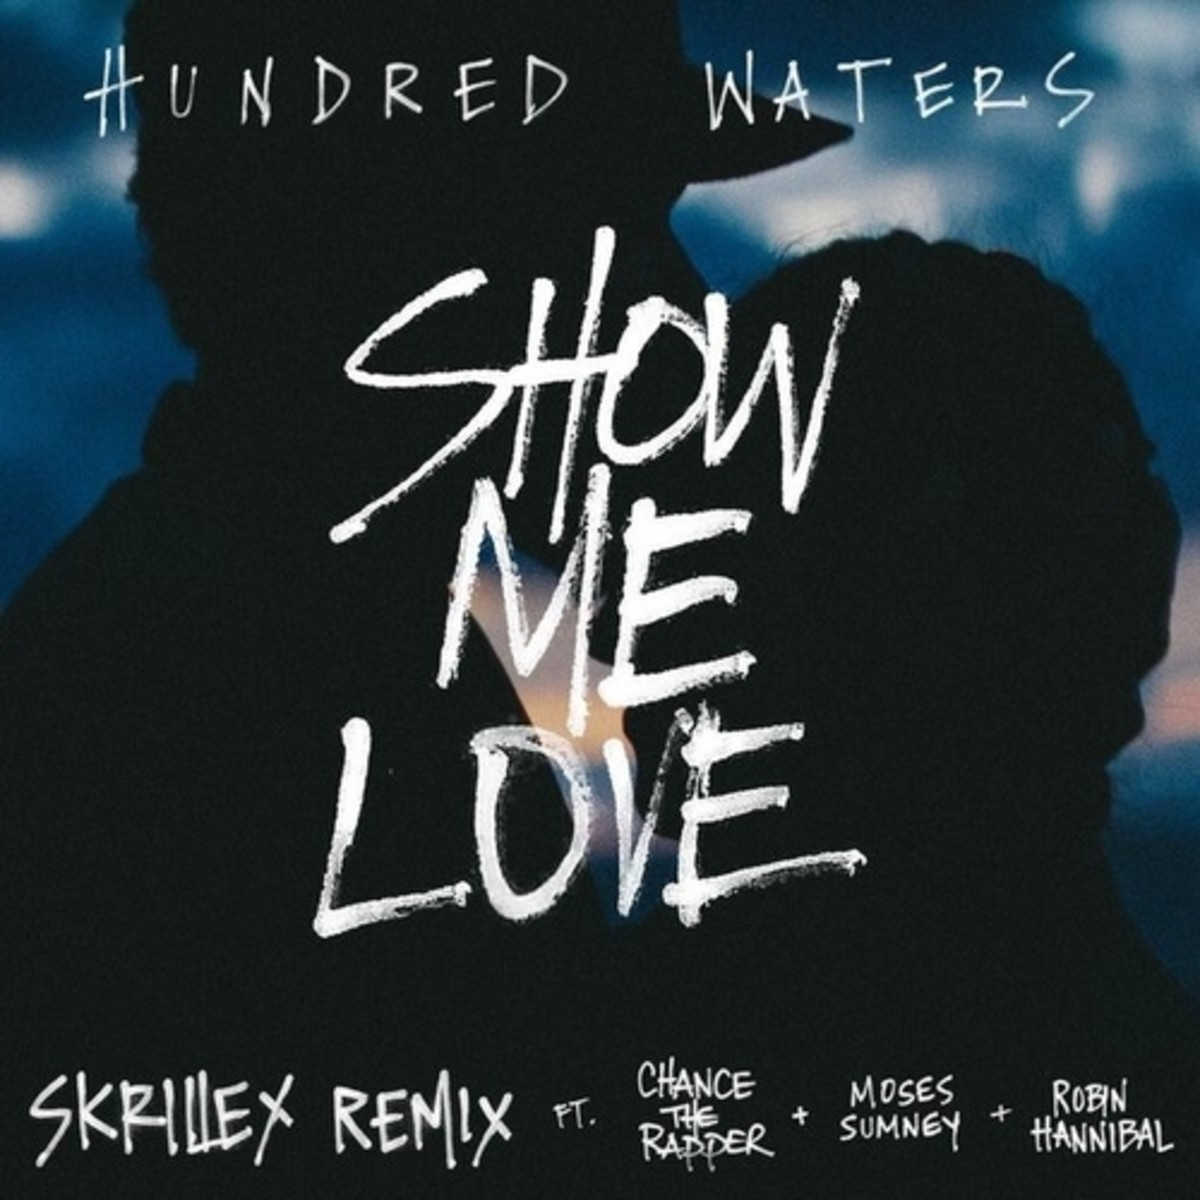 hundred-waters-show-me-love-skrillex-remix.jpg